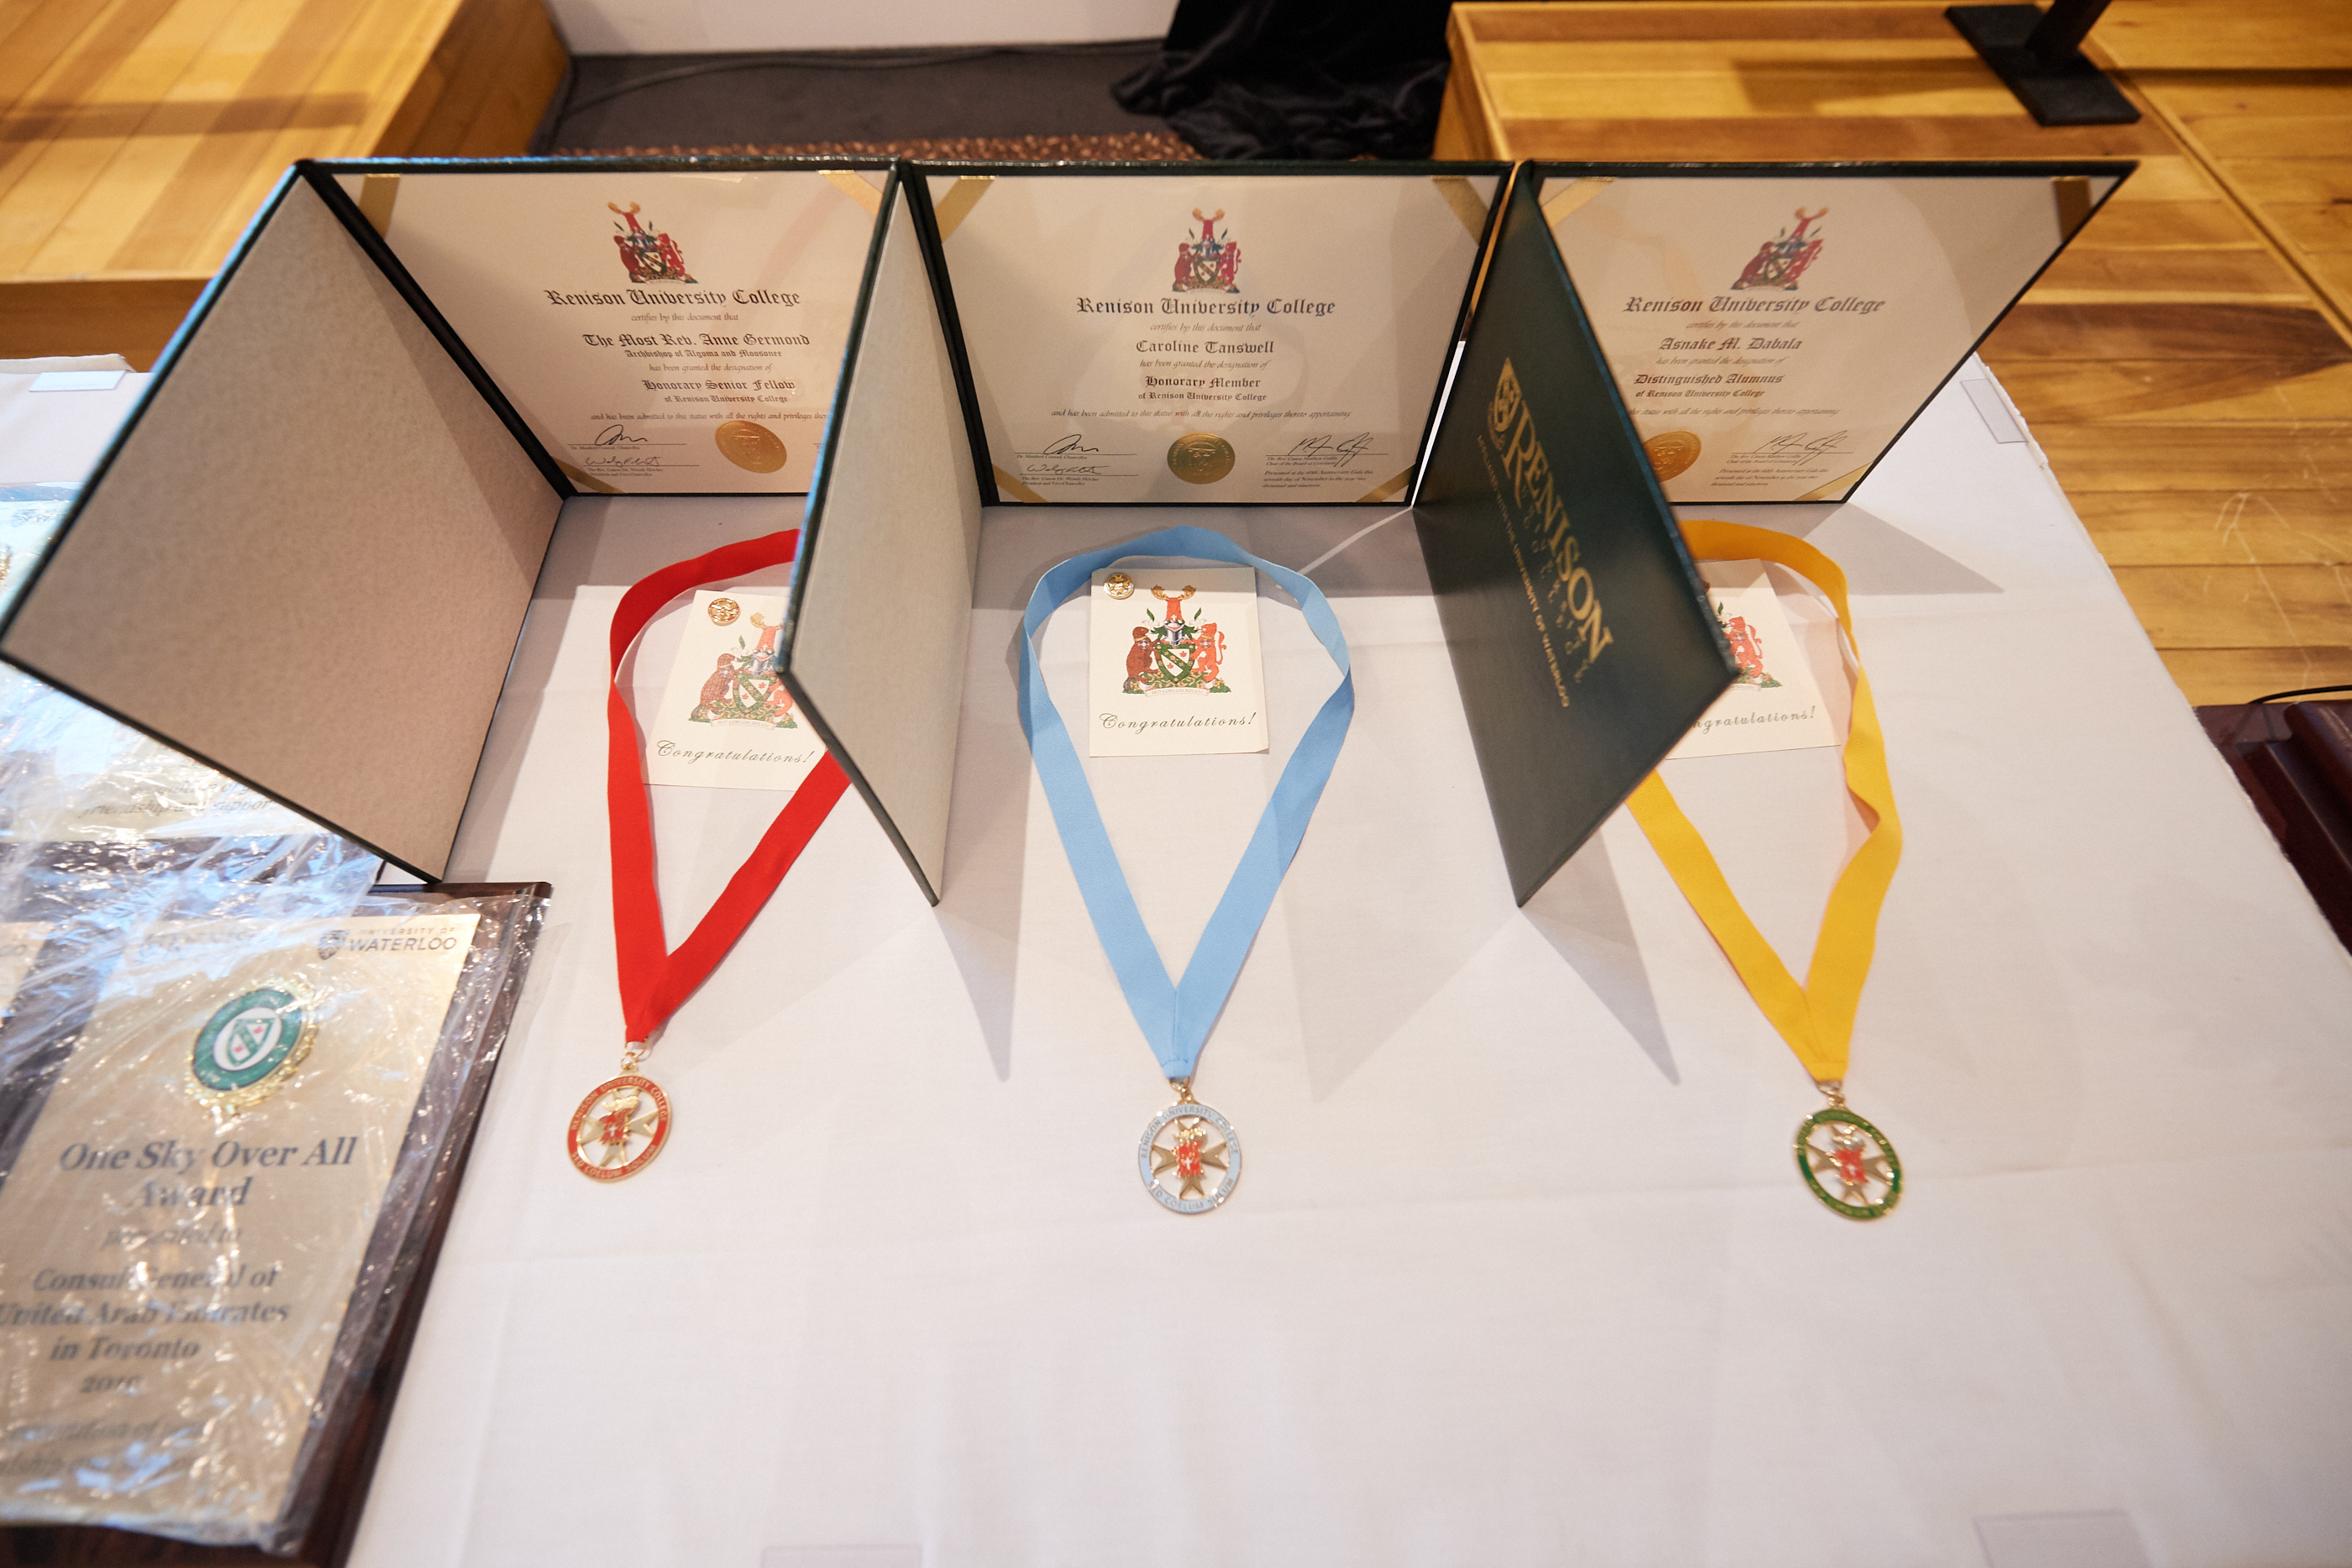 Awards presented on a table